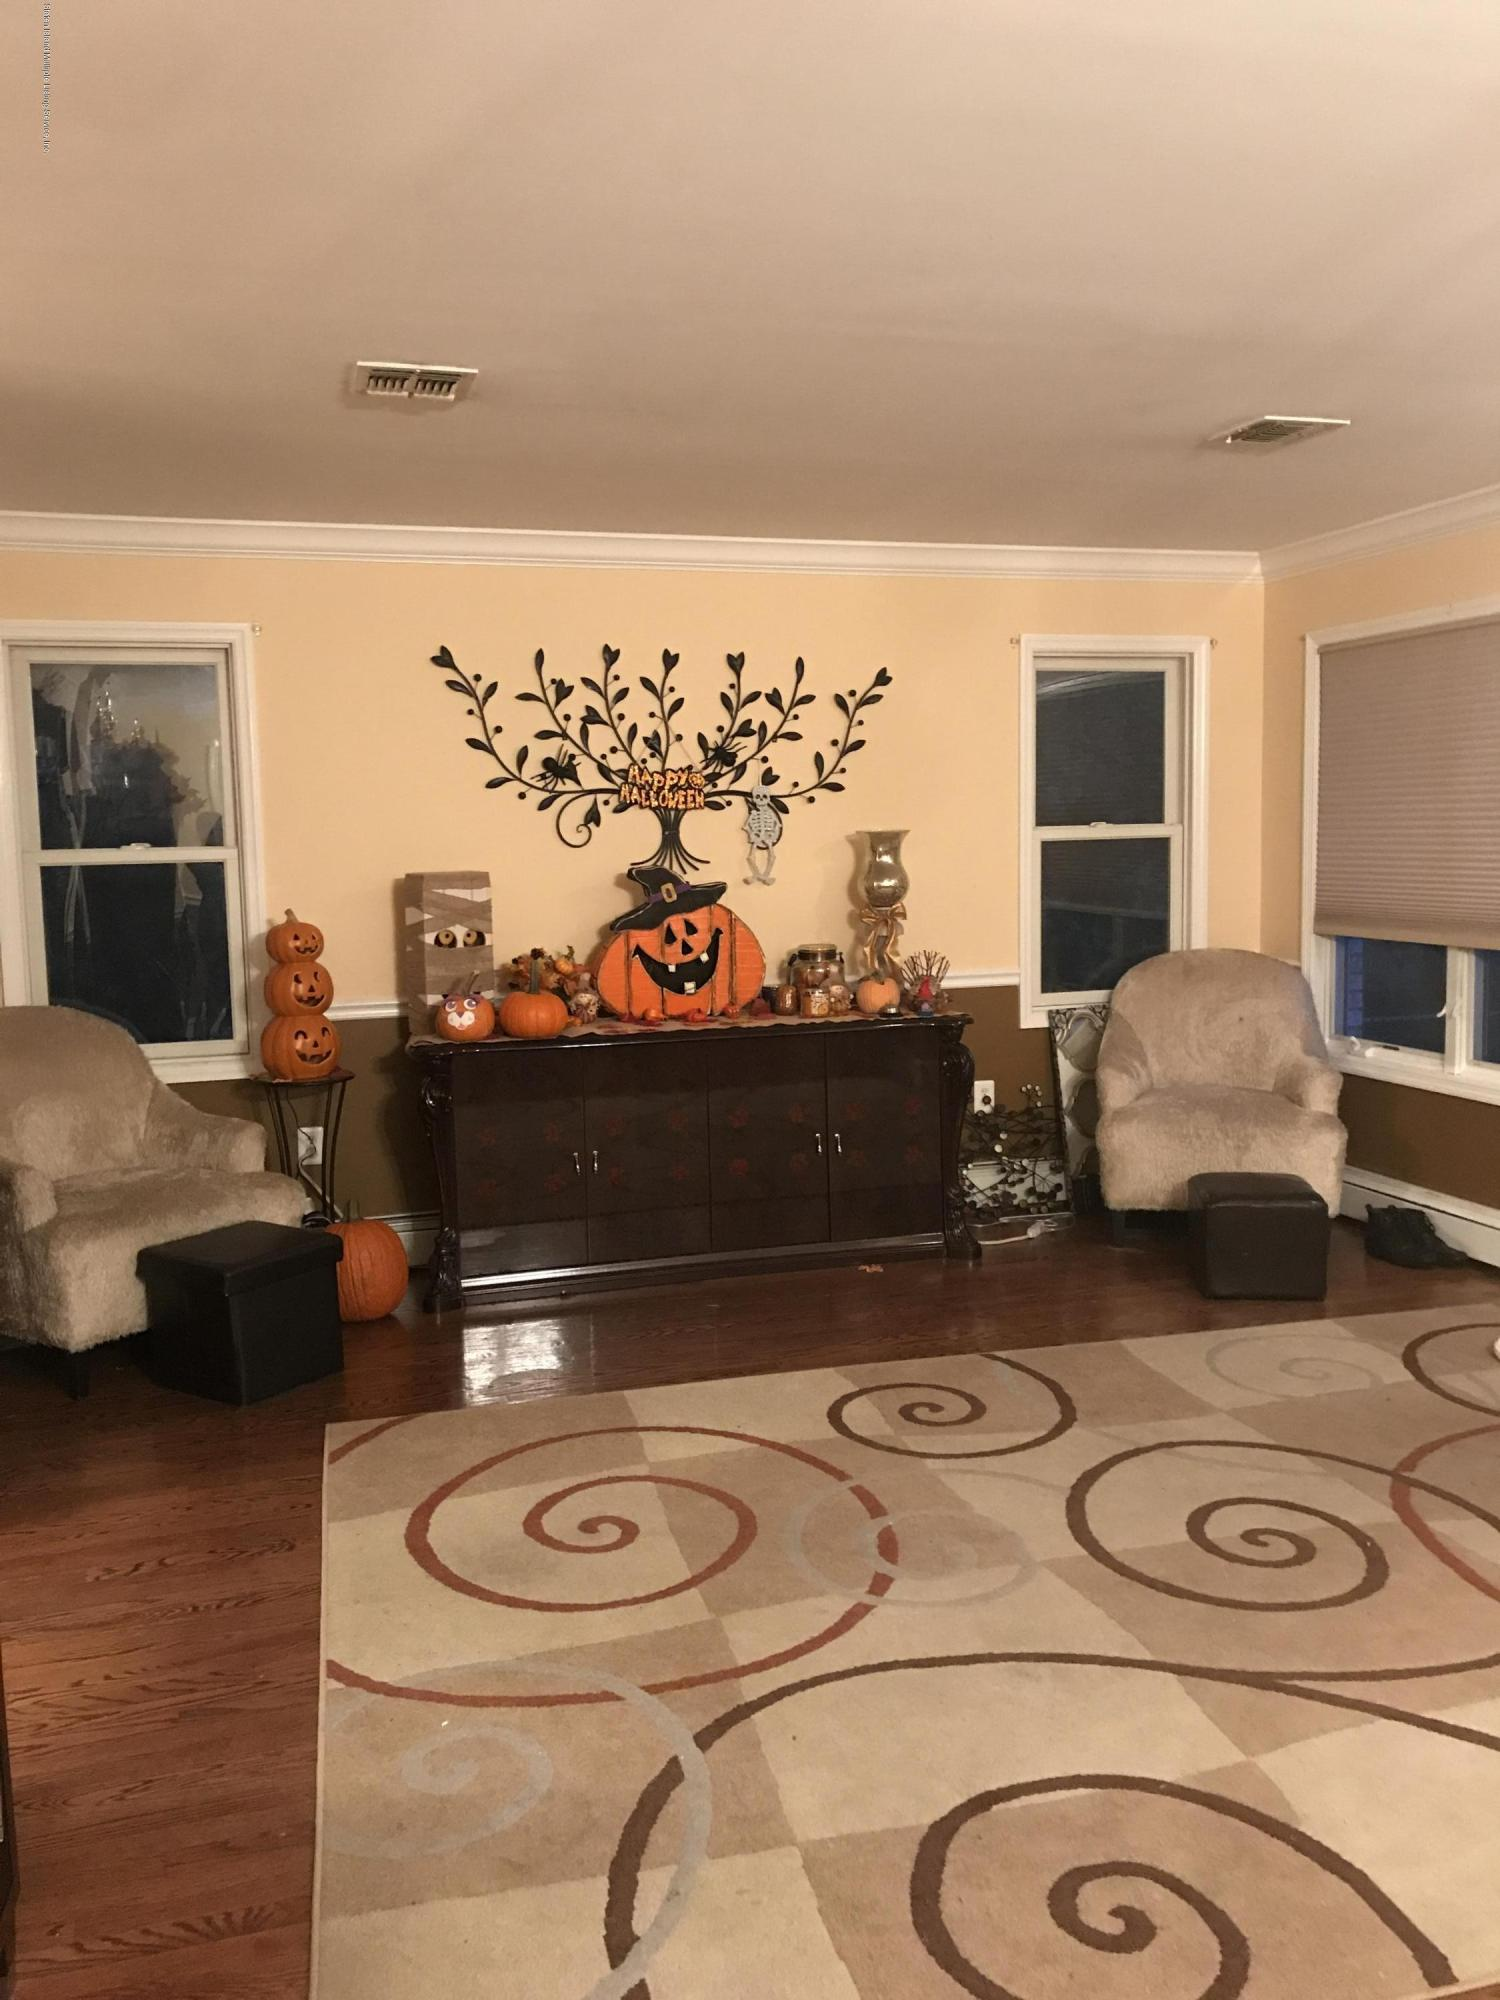 Single Family - Detached 20 Gabrielle Court  Staten Island, NY 10312, MLS-1123867-6